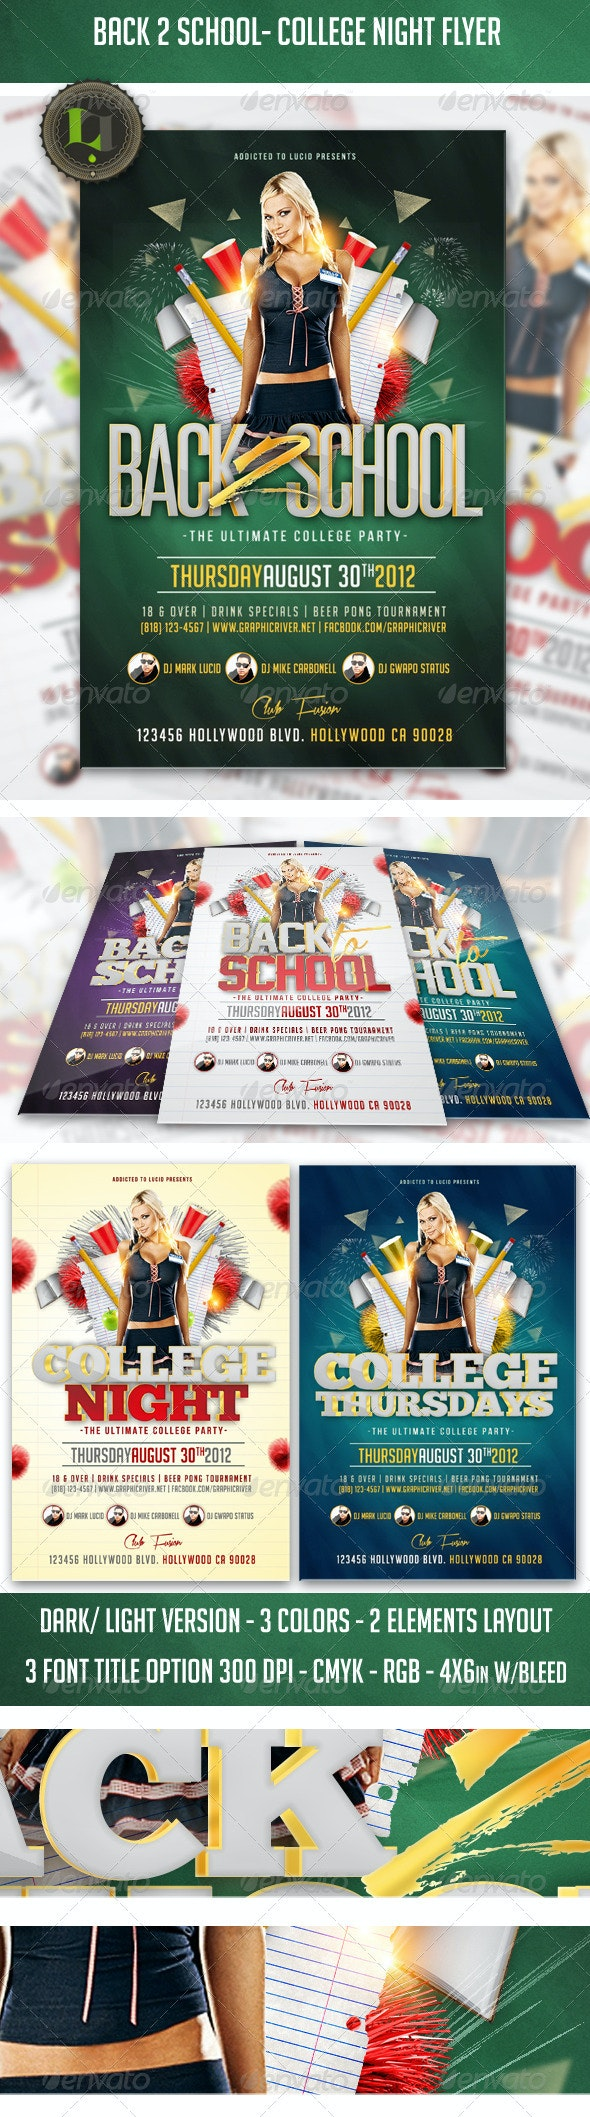 Back 2 School - College Night Flyer - Clubs & Parties Events